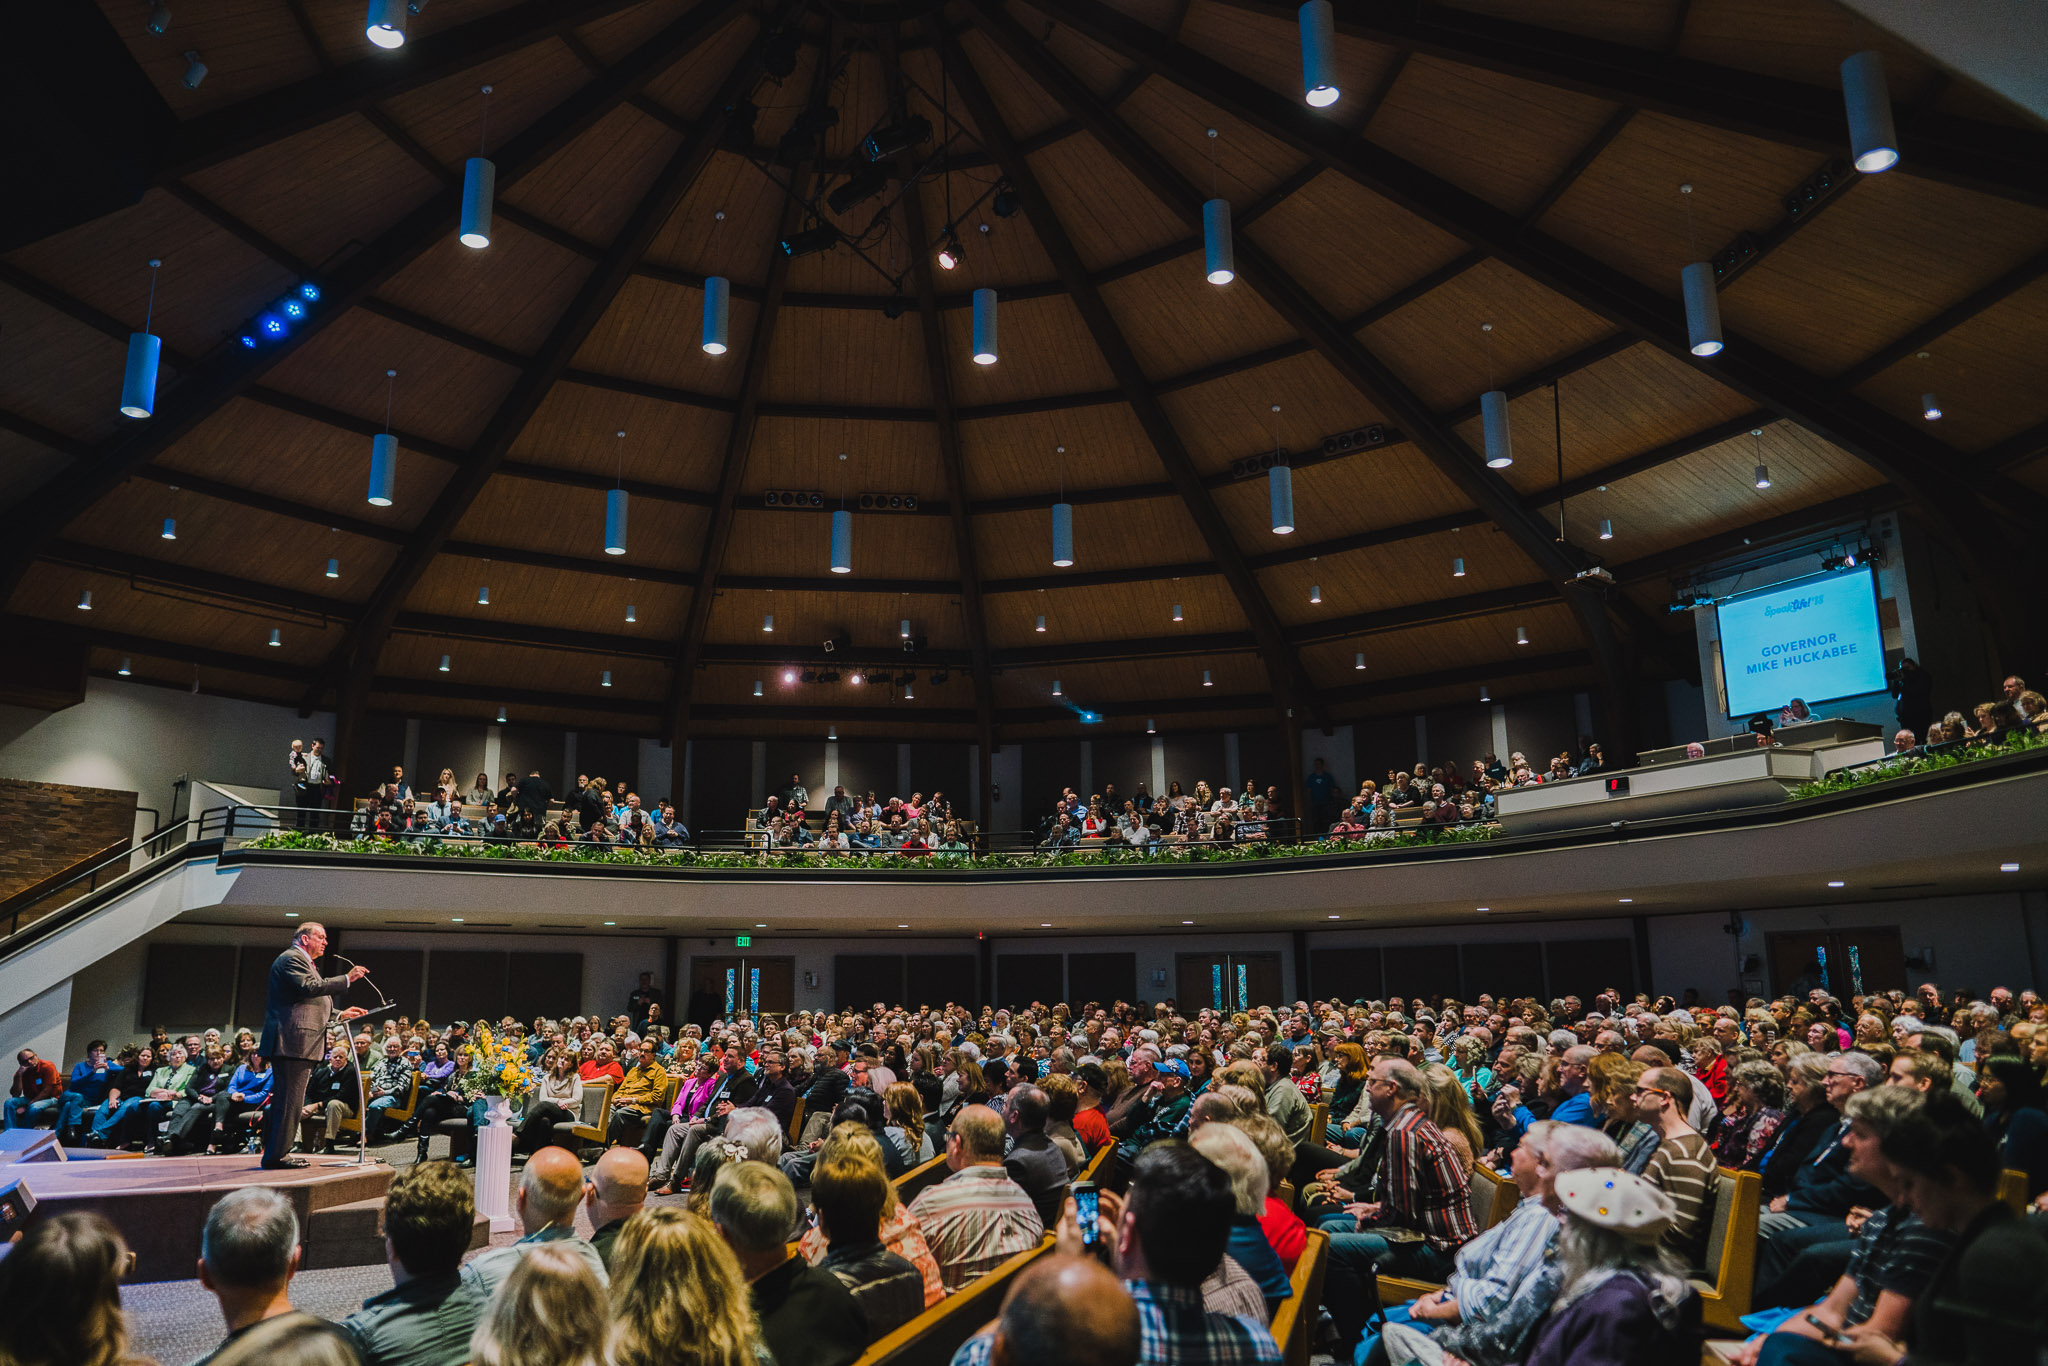 Photo: Gov. Mike Huckabee addresses a packed house at Peoples Church on January 21 for Speak Life! in Salem, Oregon